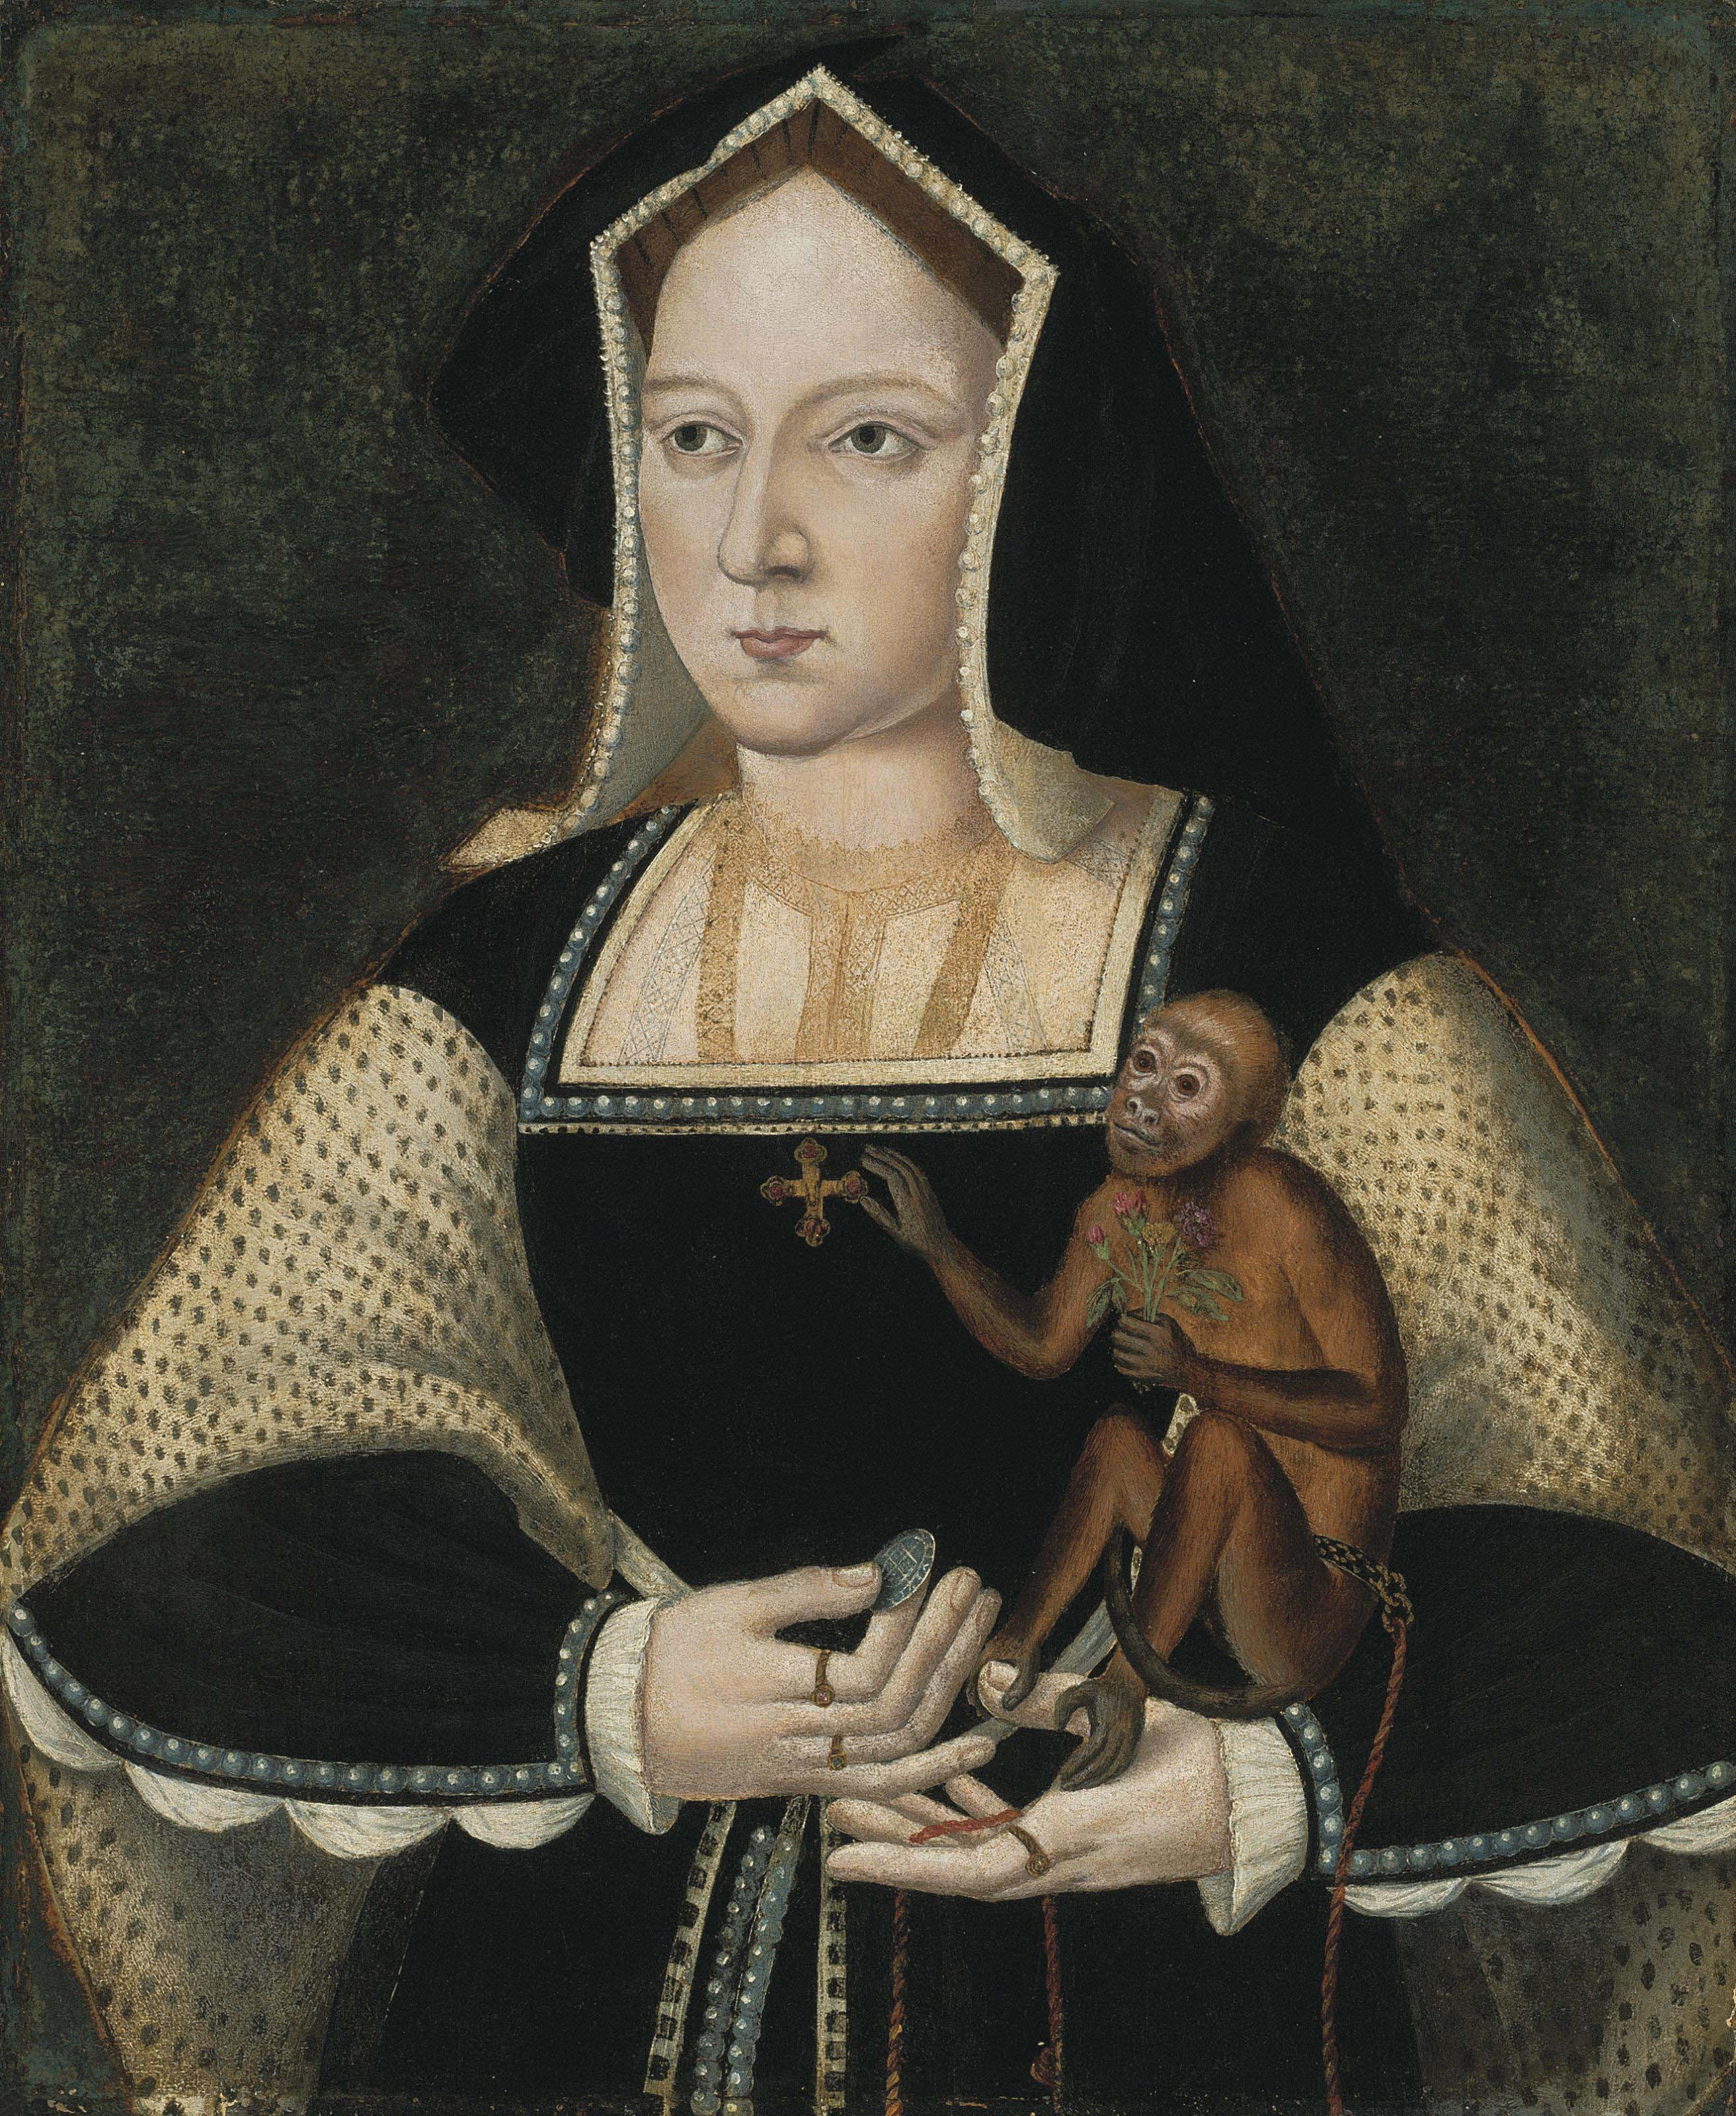 Portrait of Katherine of Aragon (1485-1536), Queen of England, half-length, in a black and white dress with a pendant cross, holding a marmoset and a coin